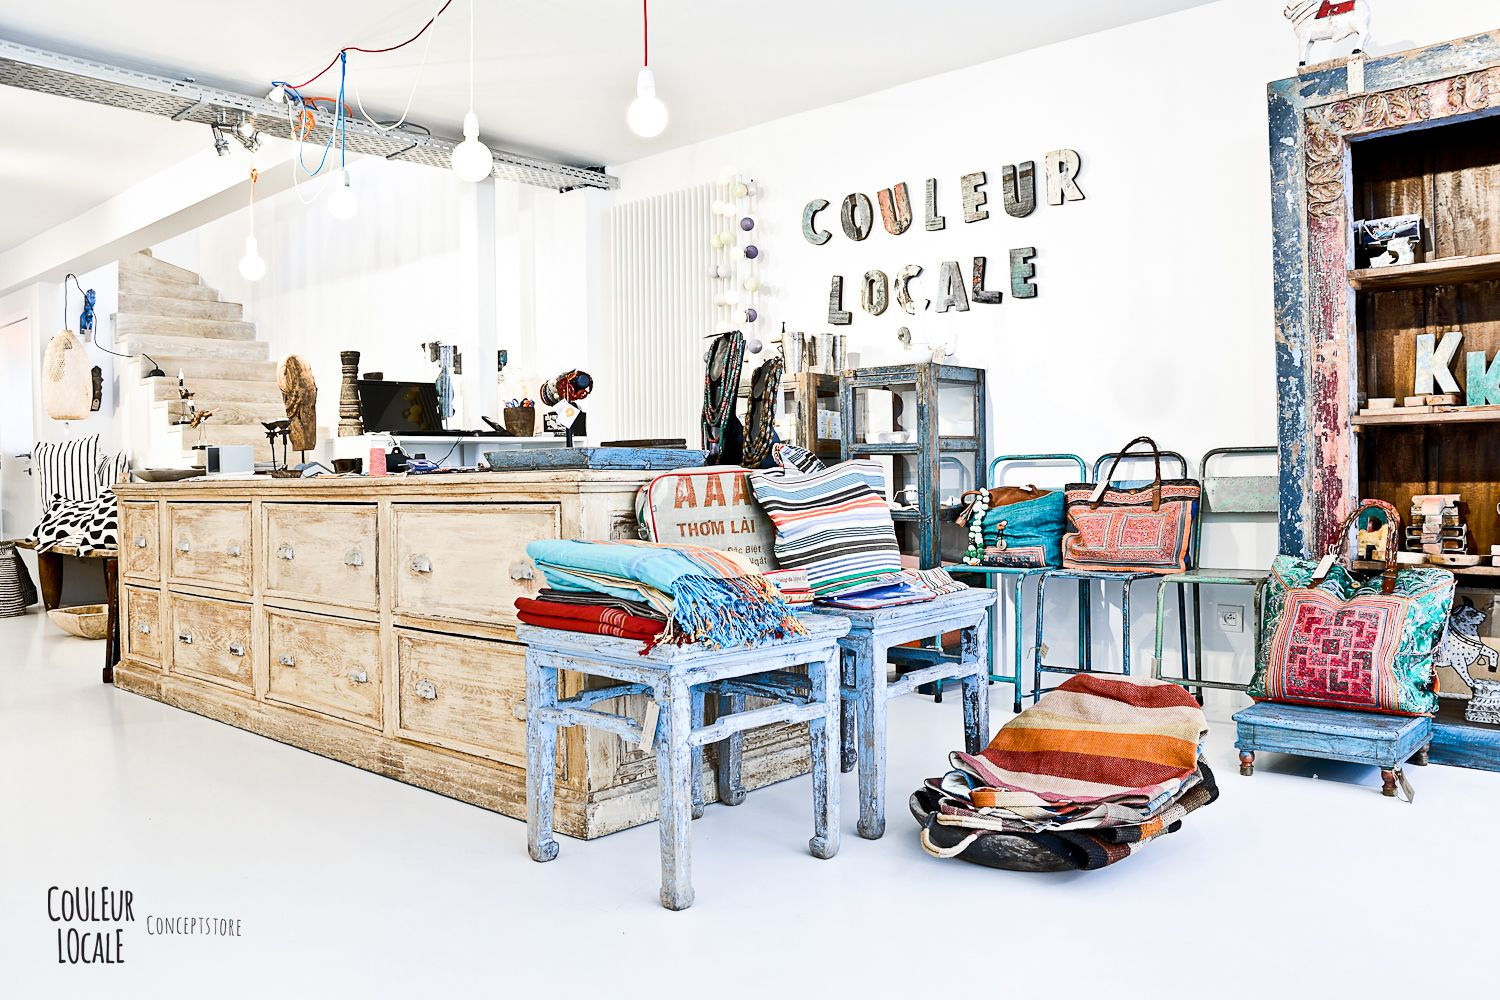 Couleur Locale Concept Store Frenchy Fancy Couleur Locale Magasins Concept Concept Store